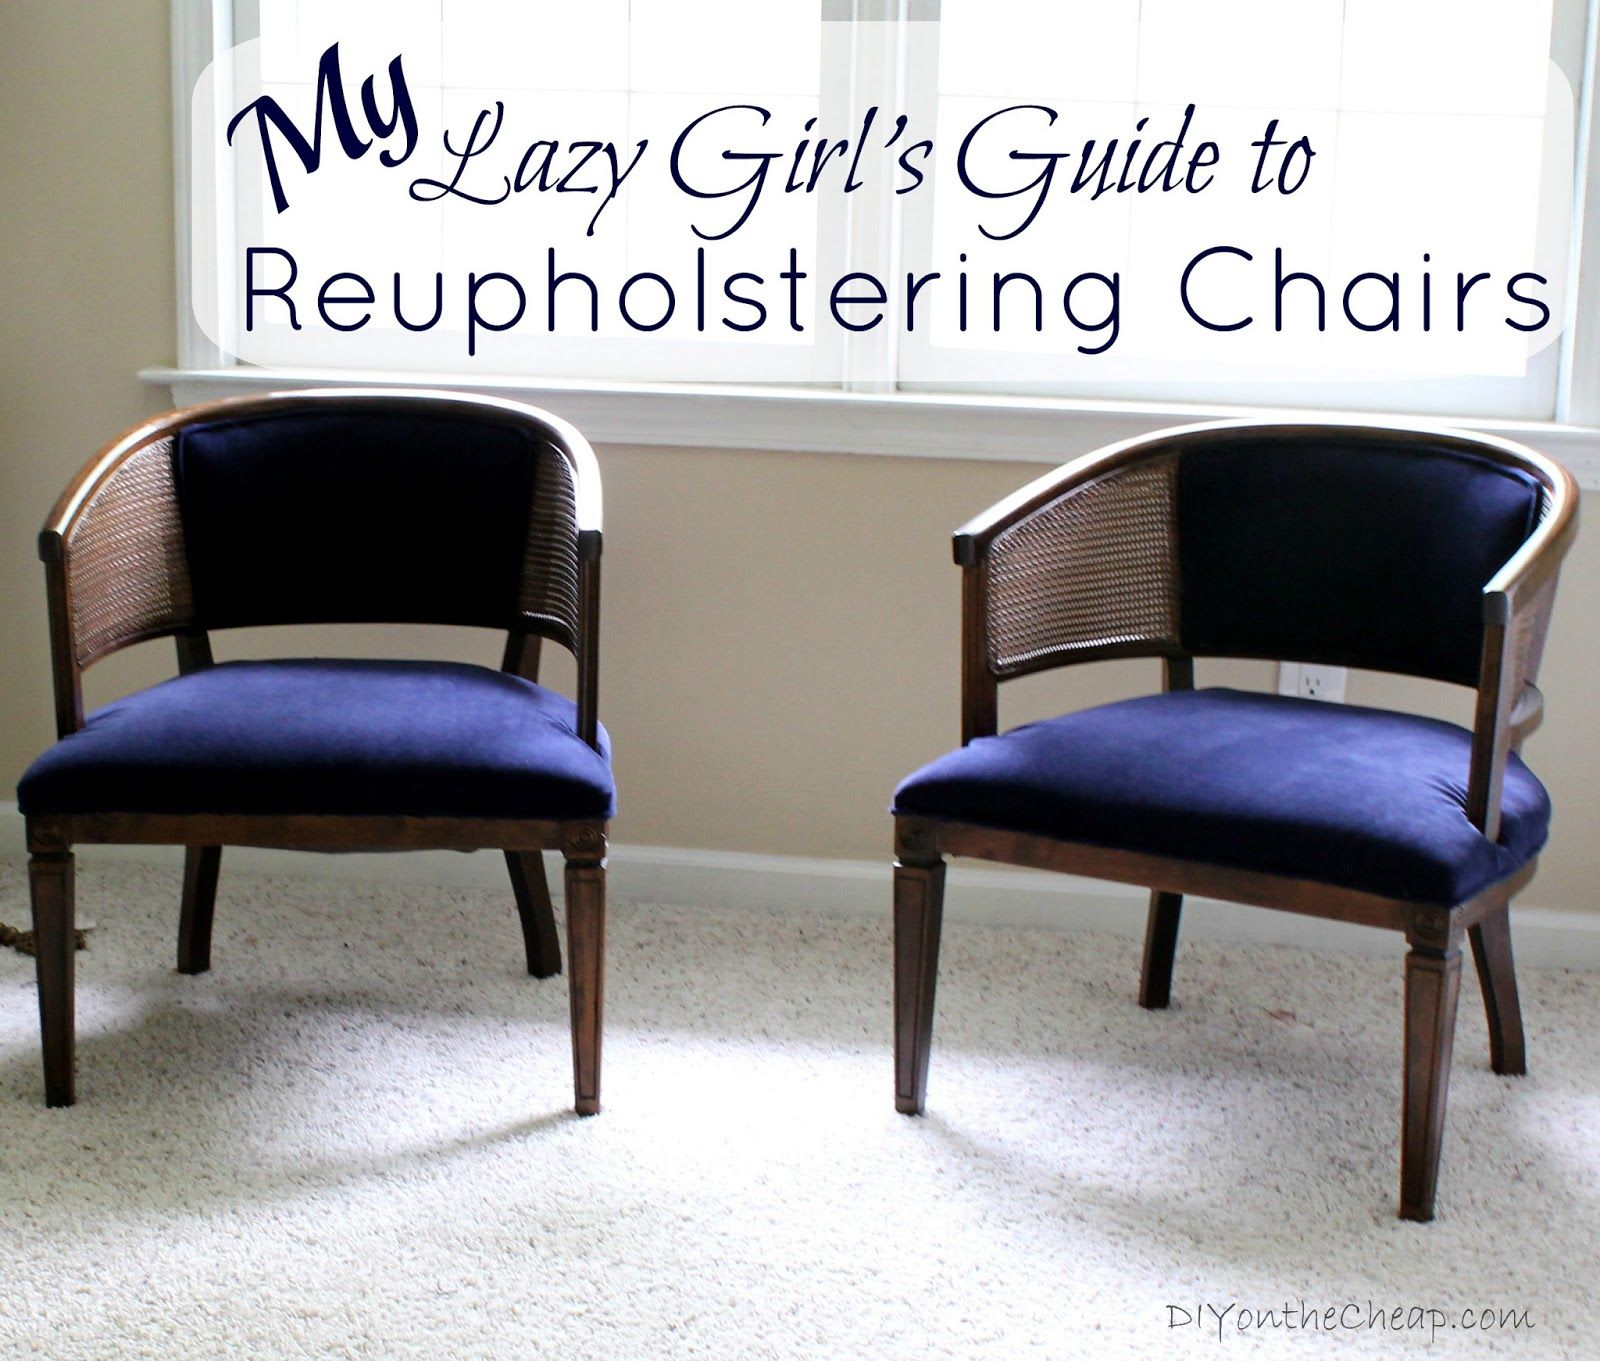 reupholster sofa south london high back leather corner lazy girls guide to reupholstering chairs tutorial via